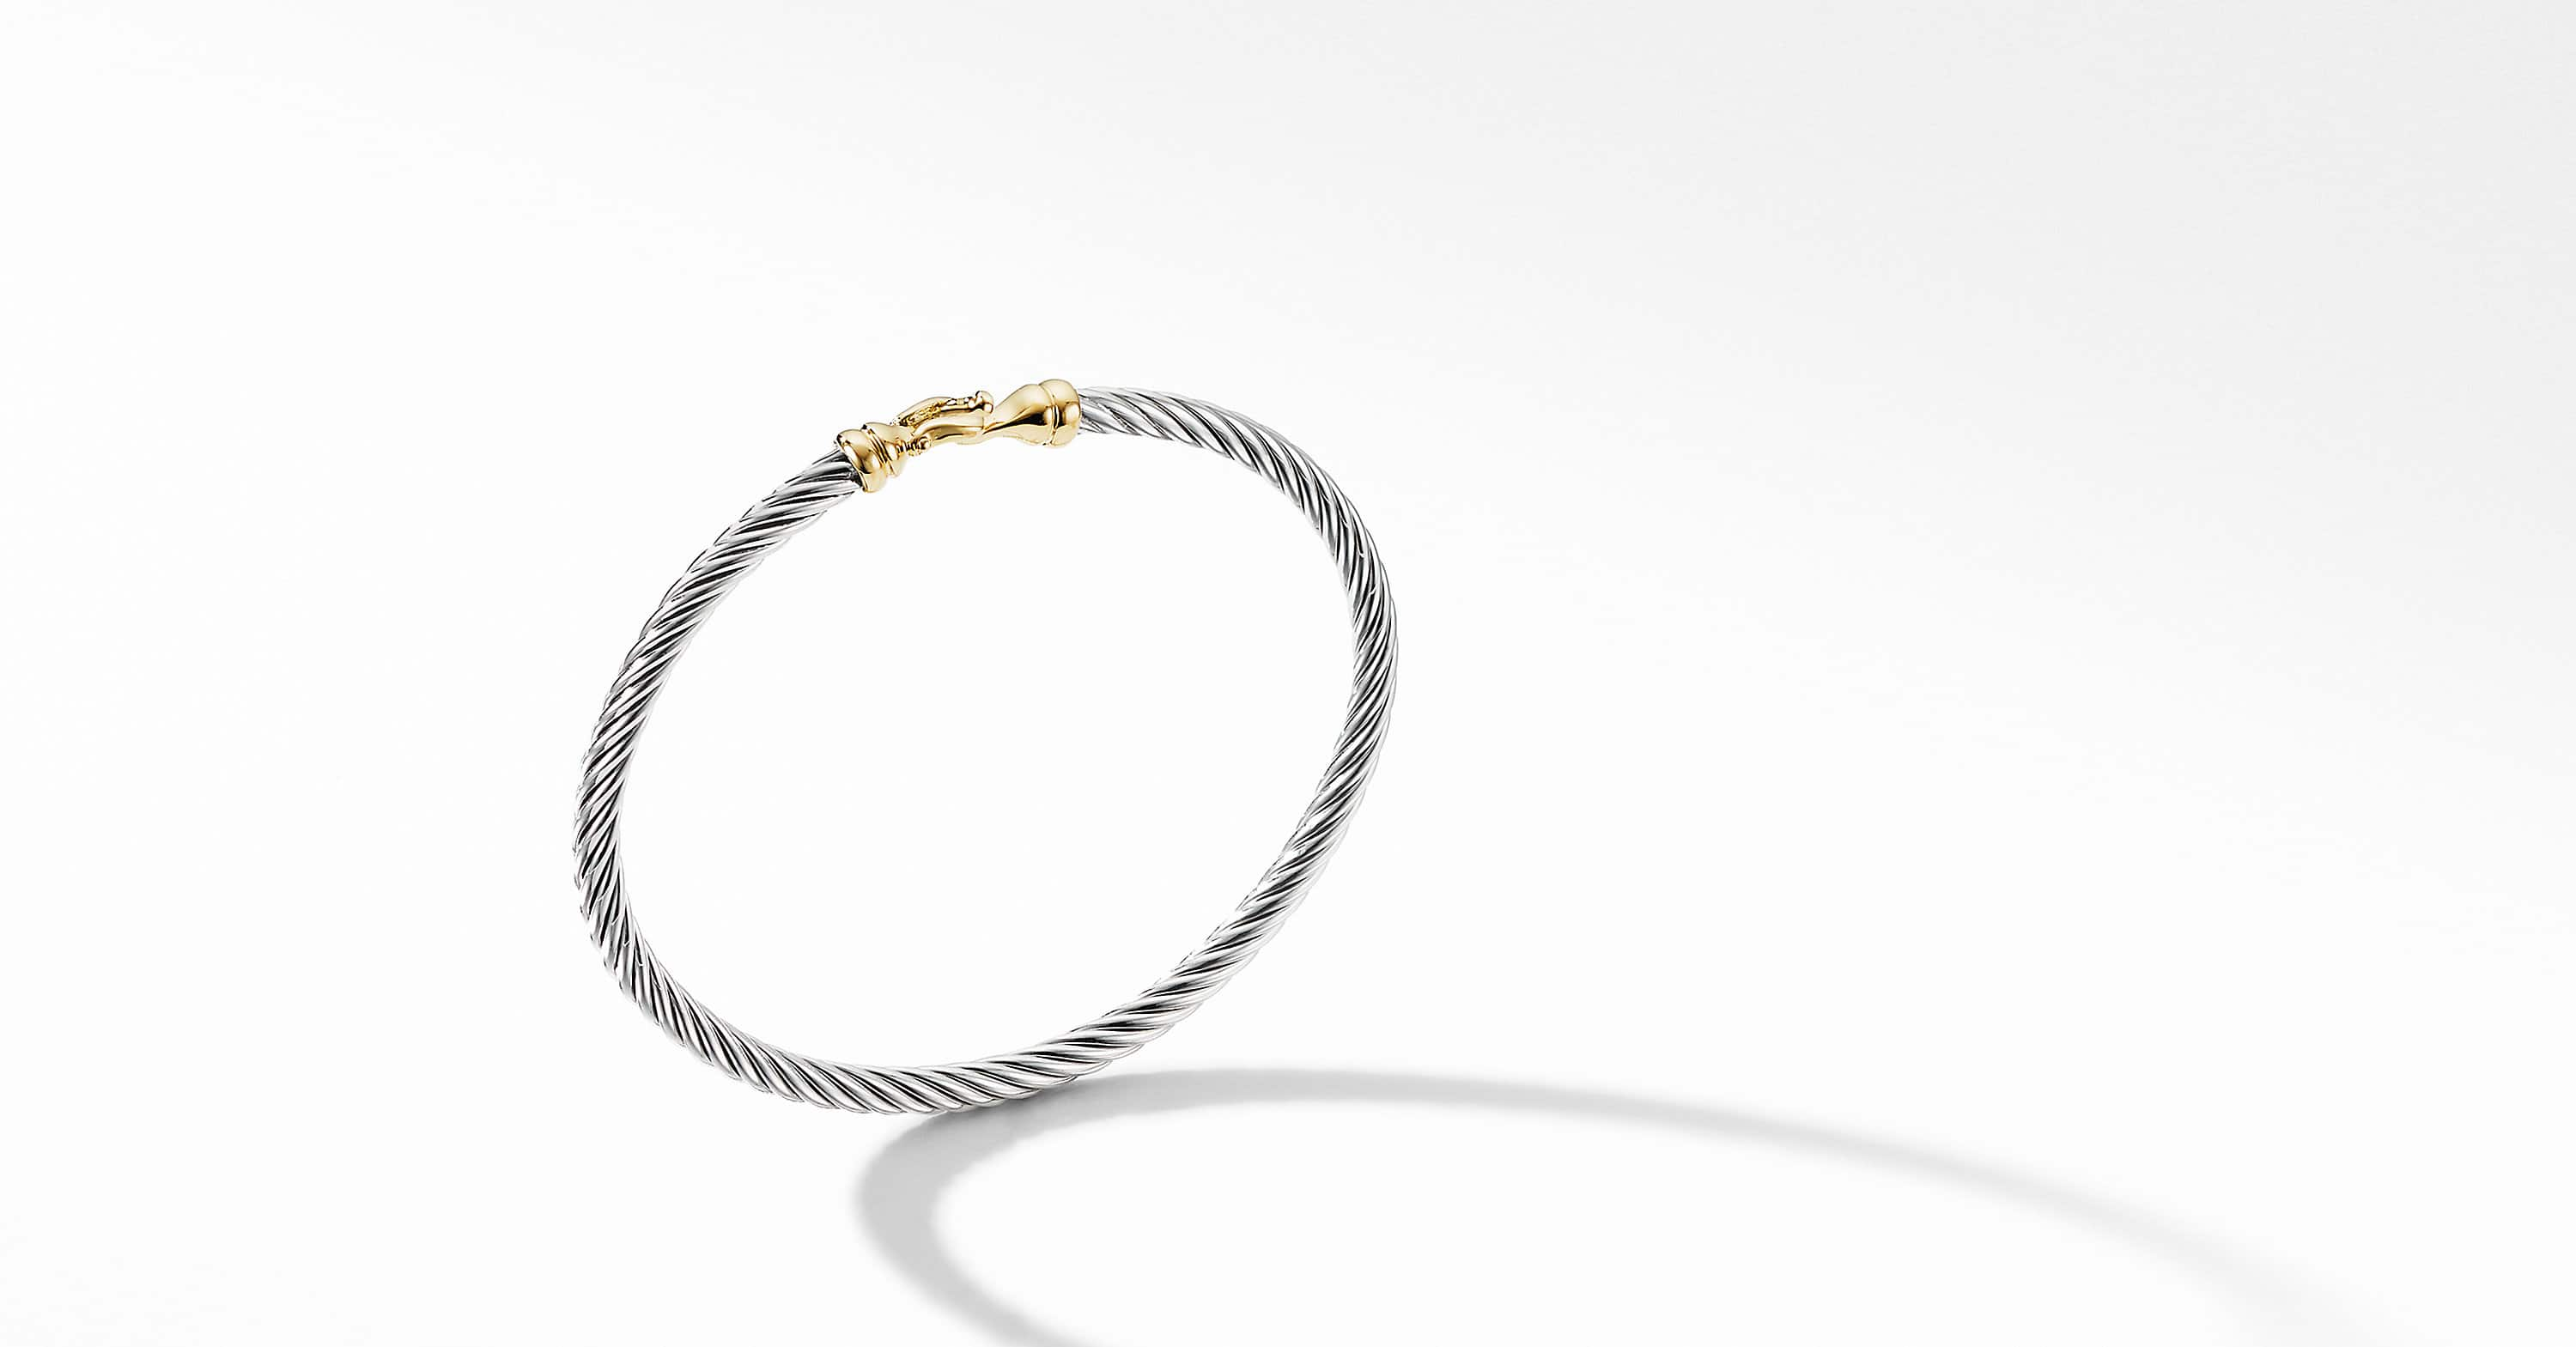 Cable Kids Buckle Bracelet with 14K Yellow Gold, 3mm